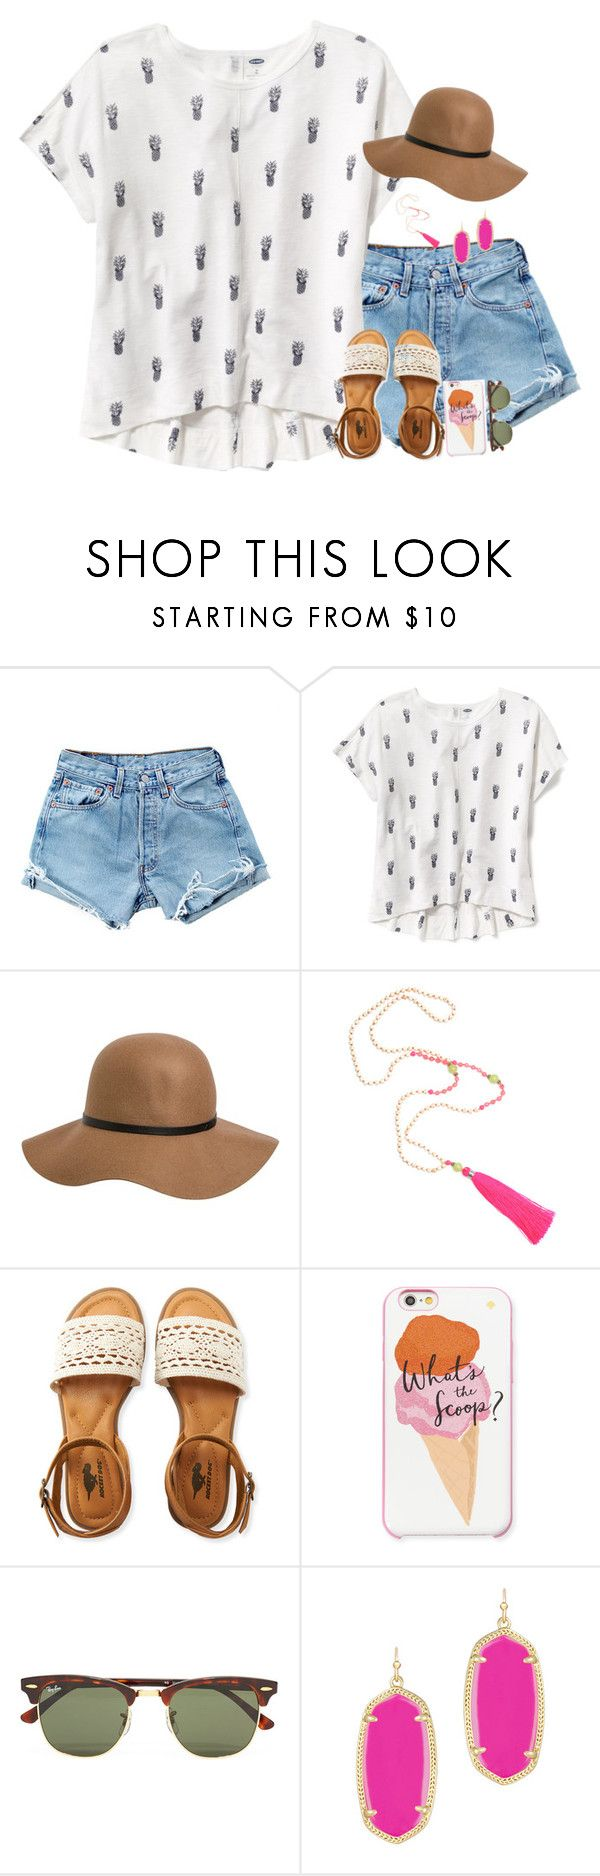 """""""Comment snapchat names to start streaks"""" by remiii13 ❤ liked on Polyvore featuring Levi's, Old Navy, RVCA, Aéropostale, Kate Spade, Ray-Ban and Kendra Scott"""